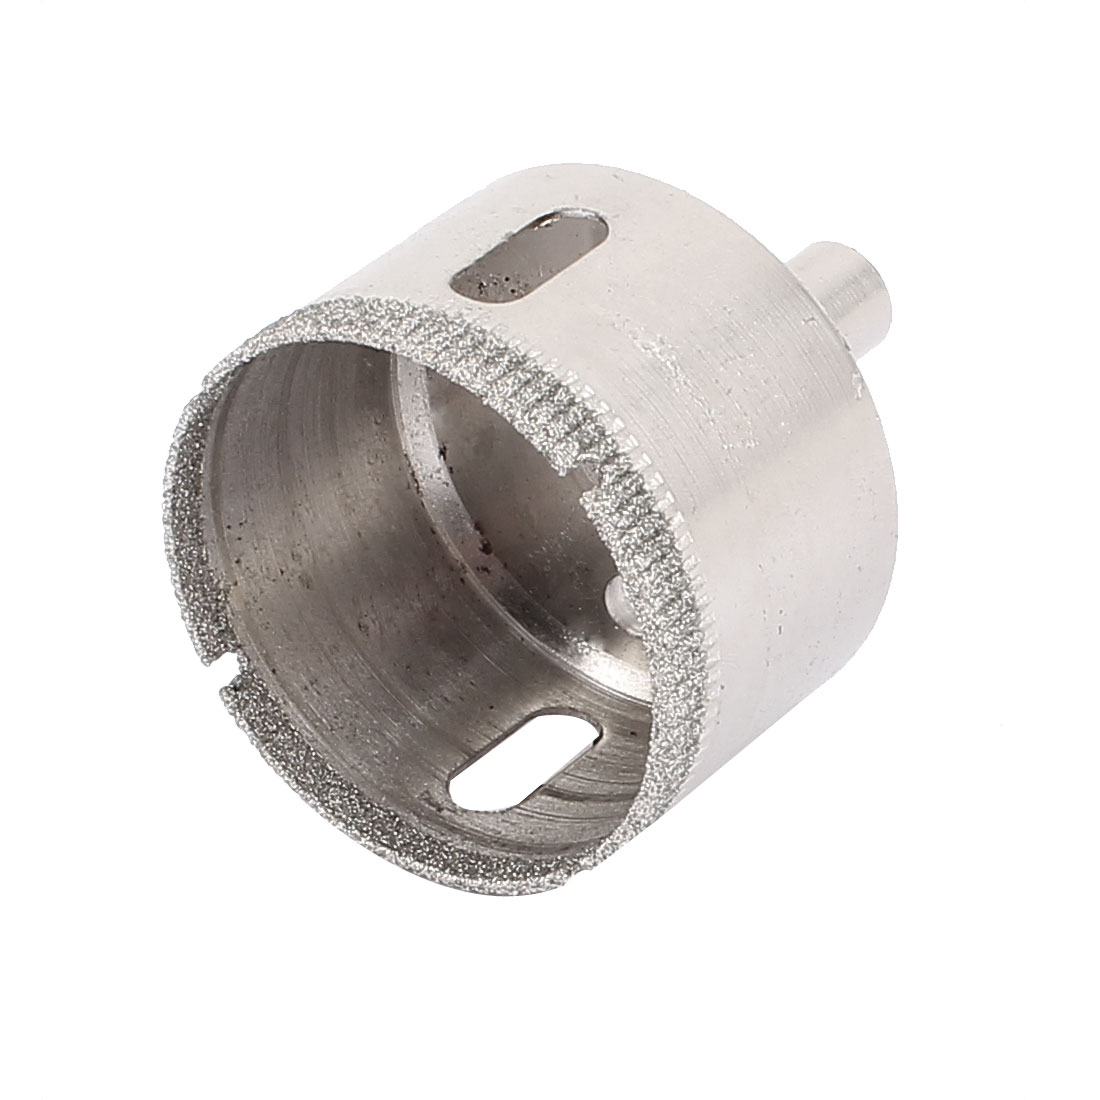 45mm diamond coated hole saw drill bits Glass Tile Marble